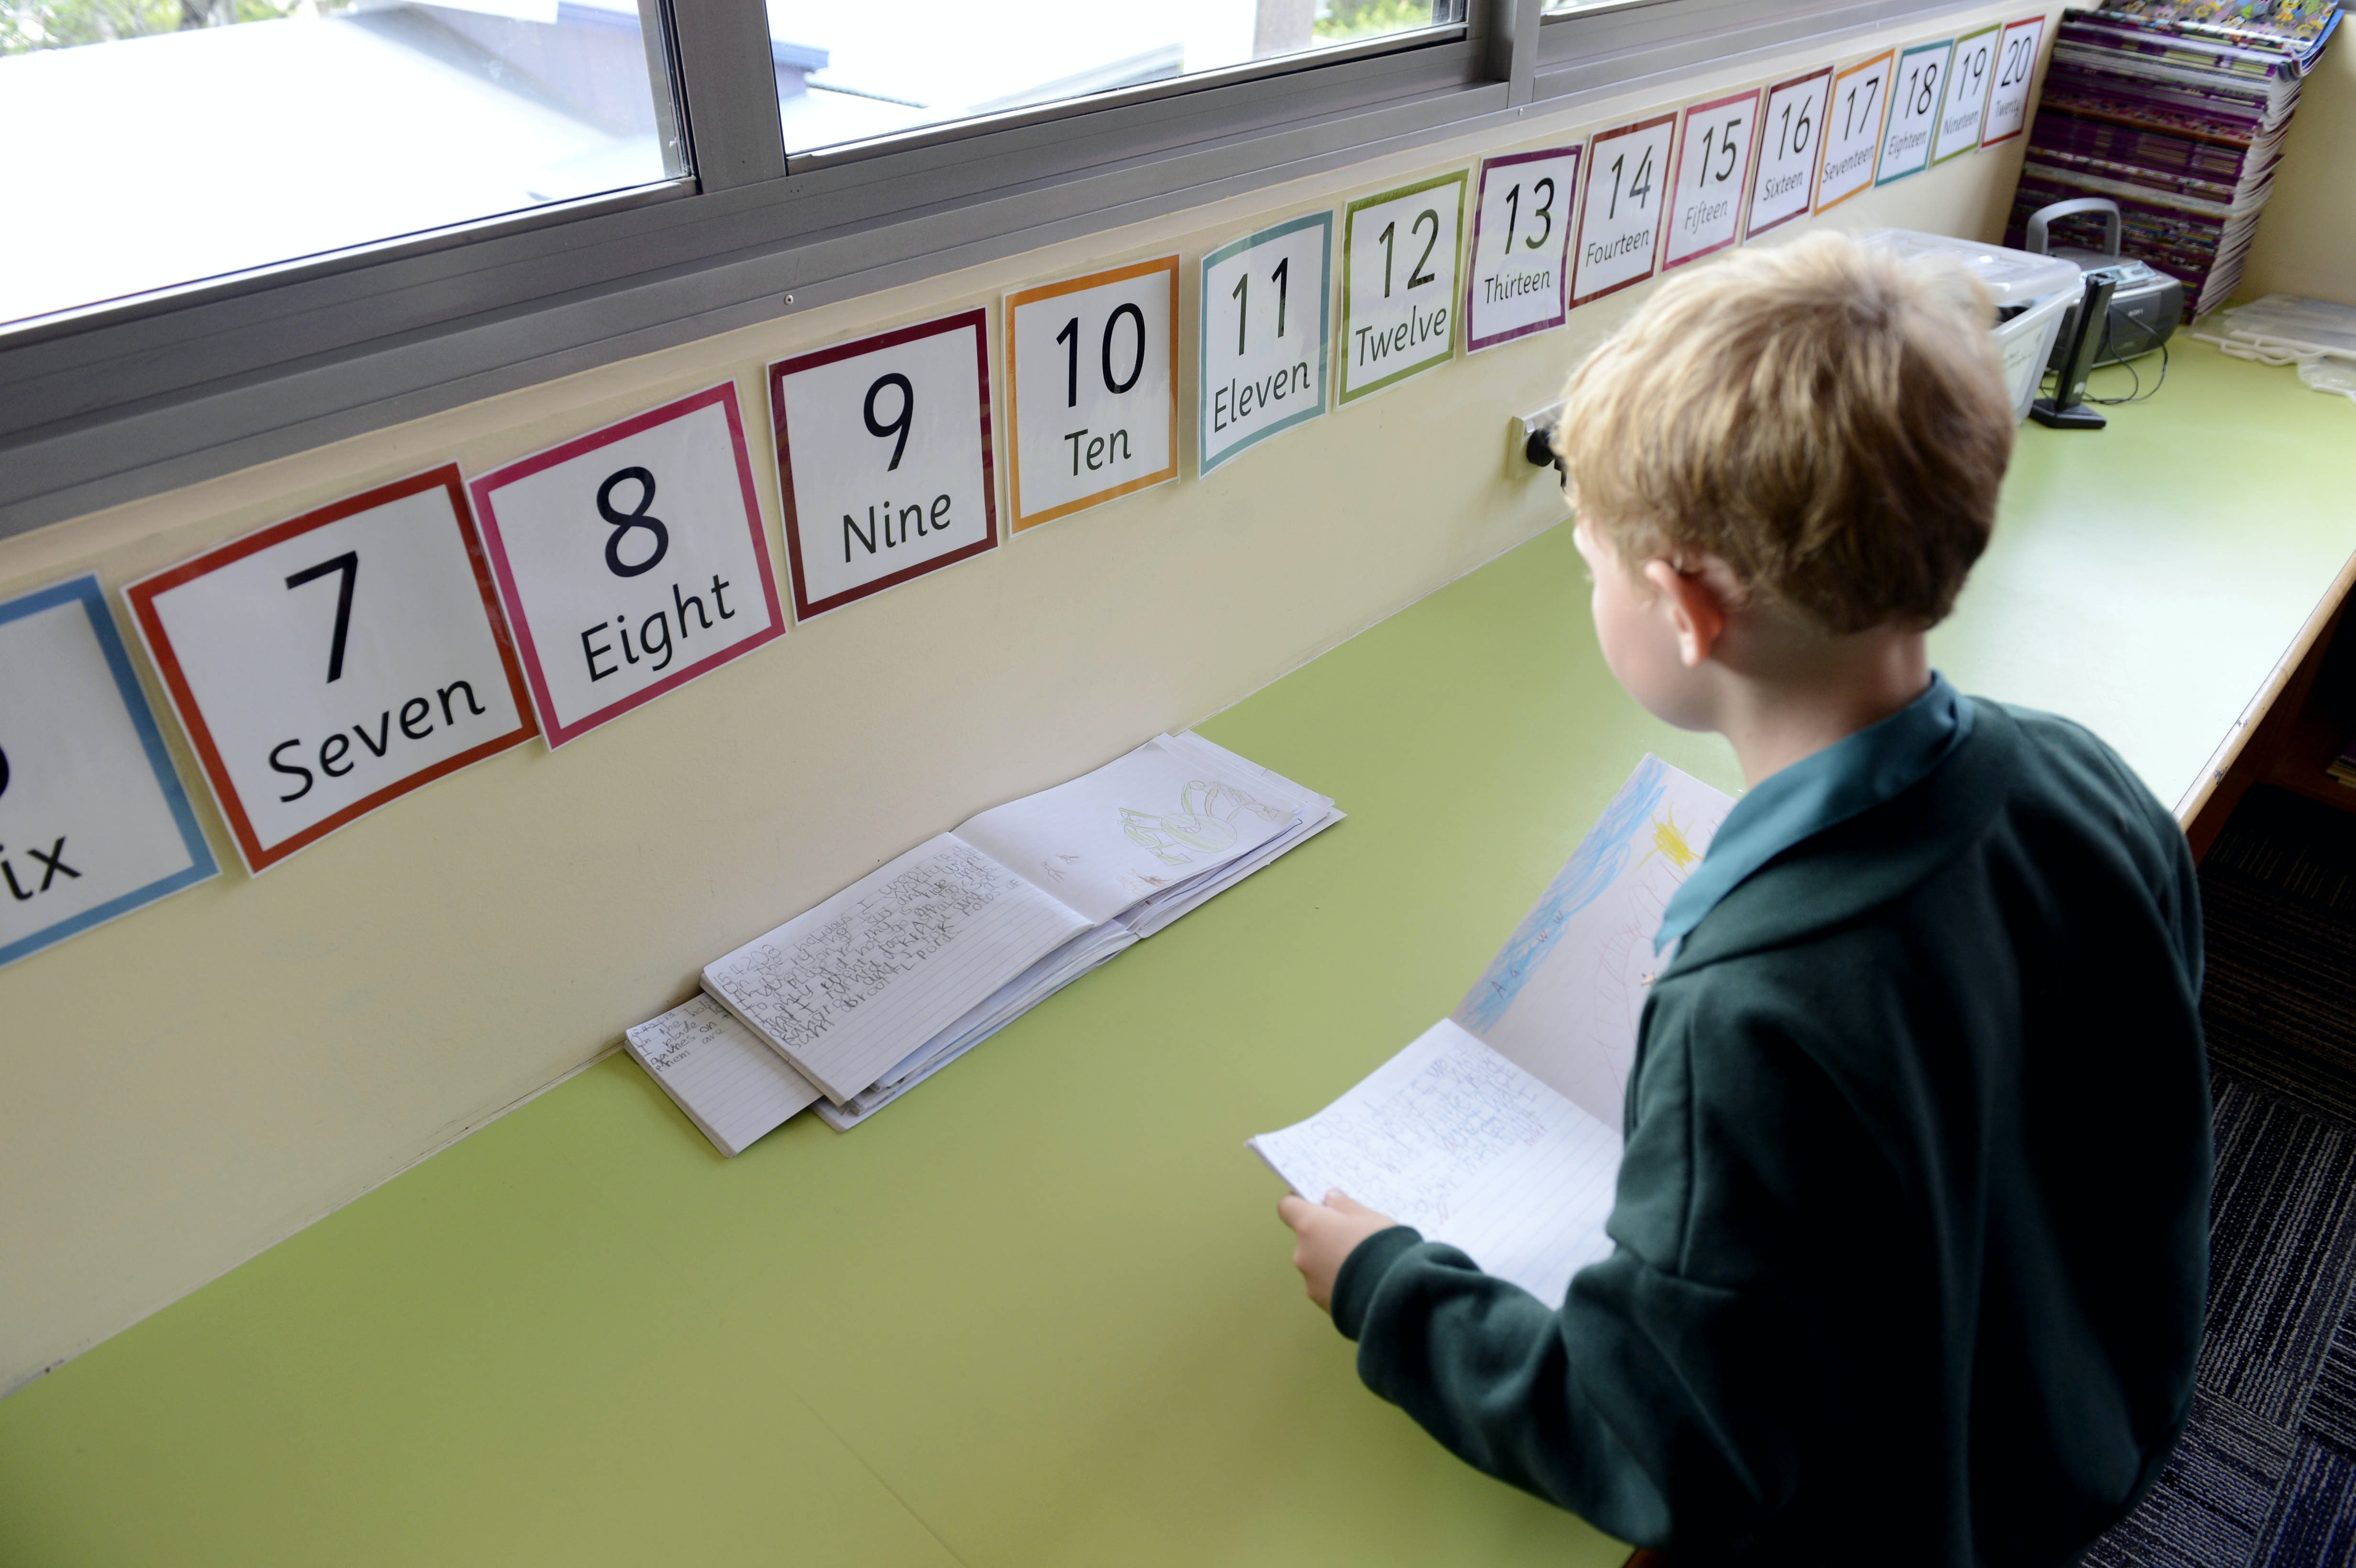 What is school like for a child with learning difficulties?